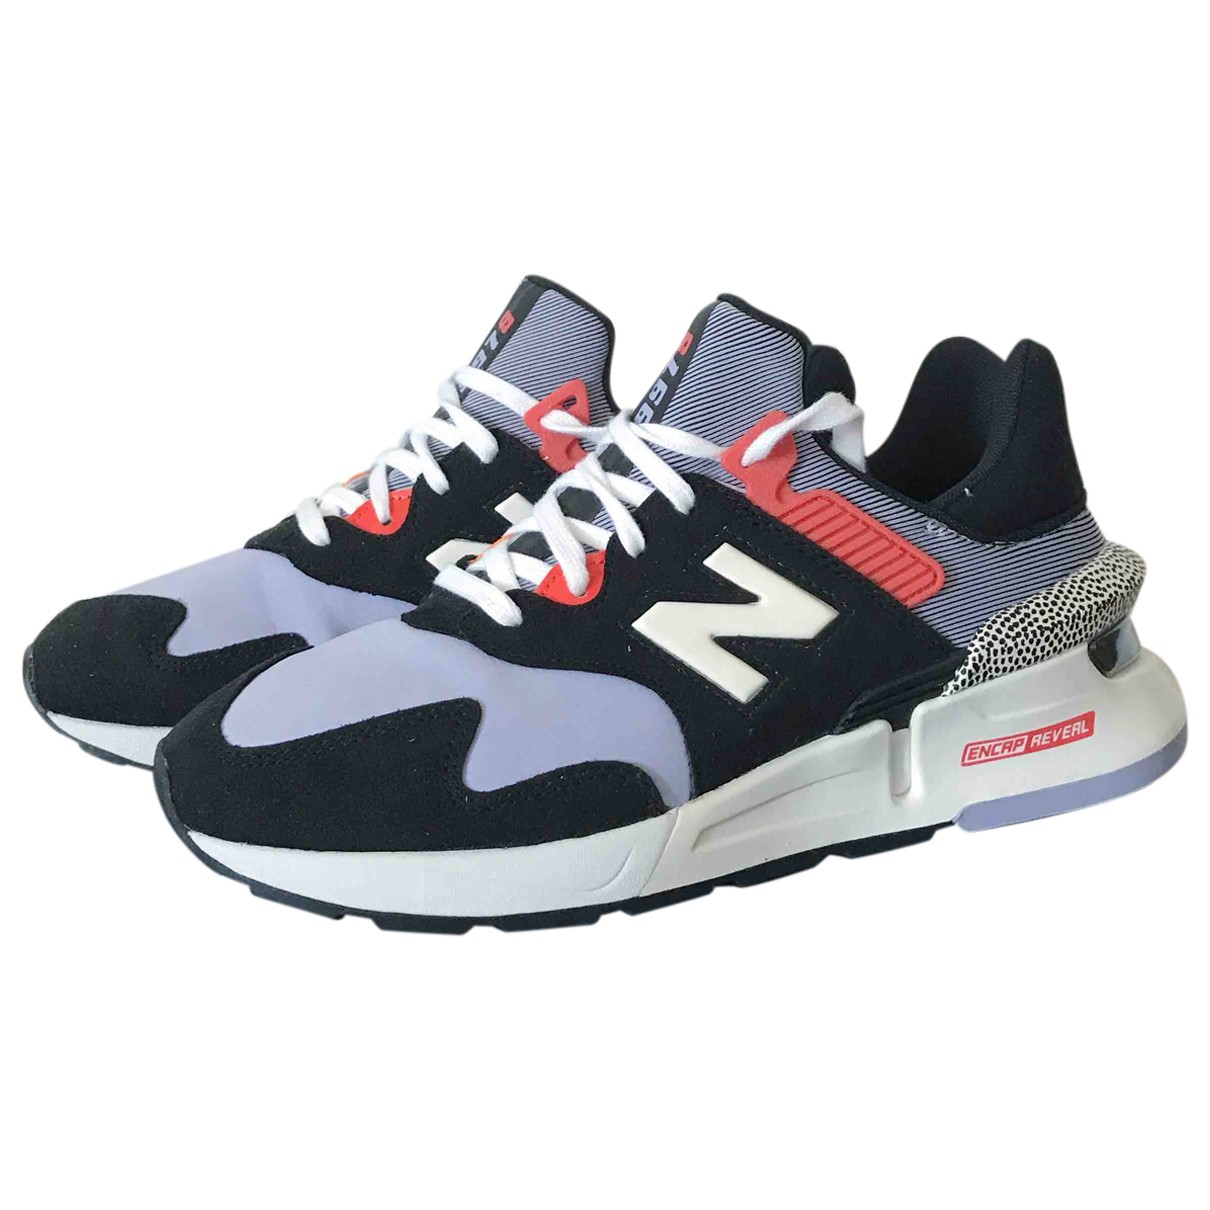 New Balance - Baskets   pour femme en suede - multicolore